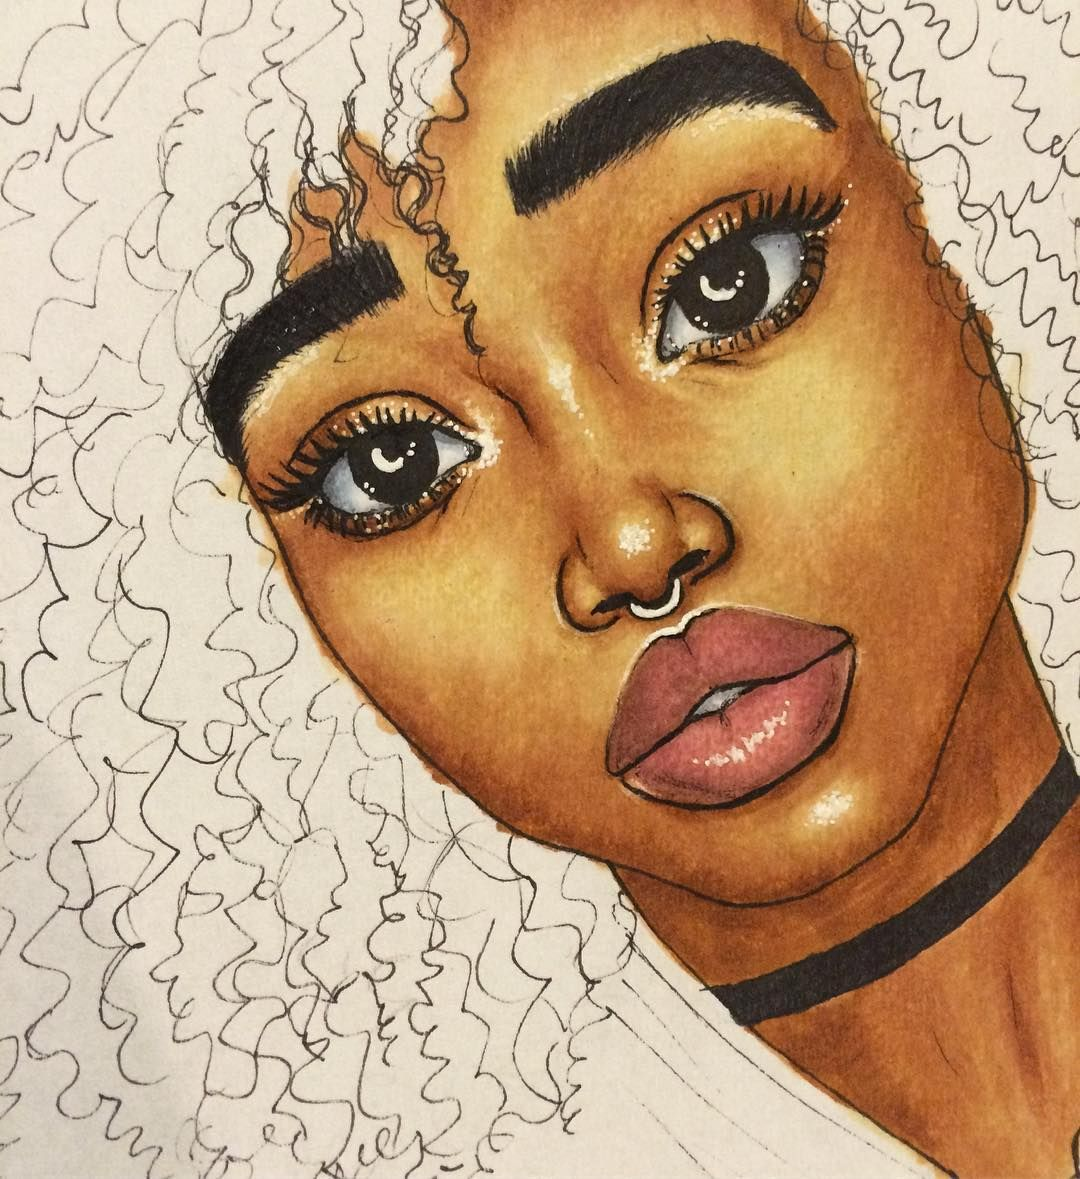 black feminity based on boondocks One of these alternatives will most likely appear automatically based on your operating system having chosen an appropriate search path, press search.